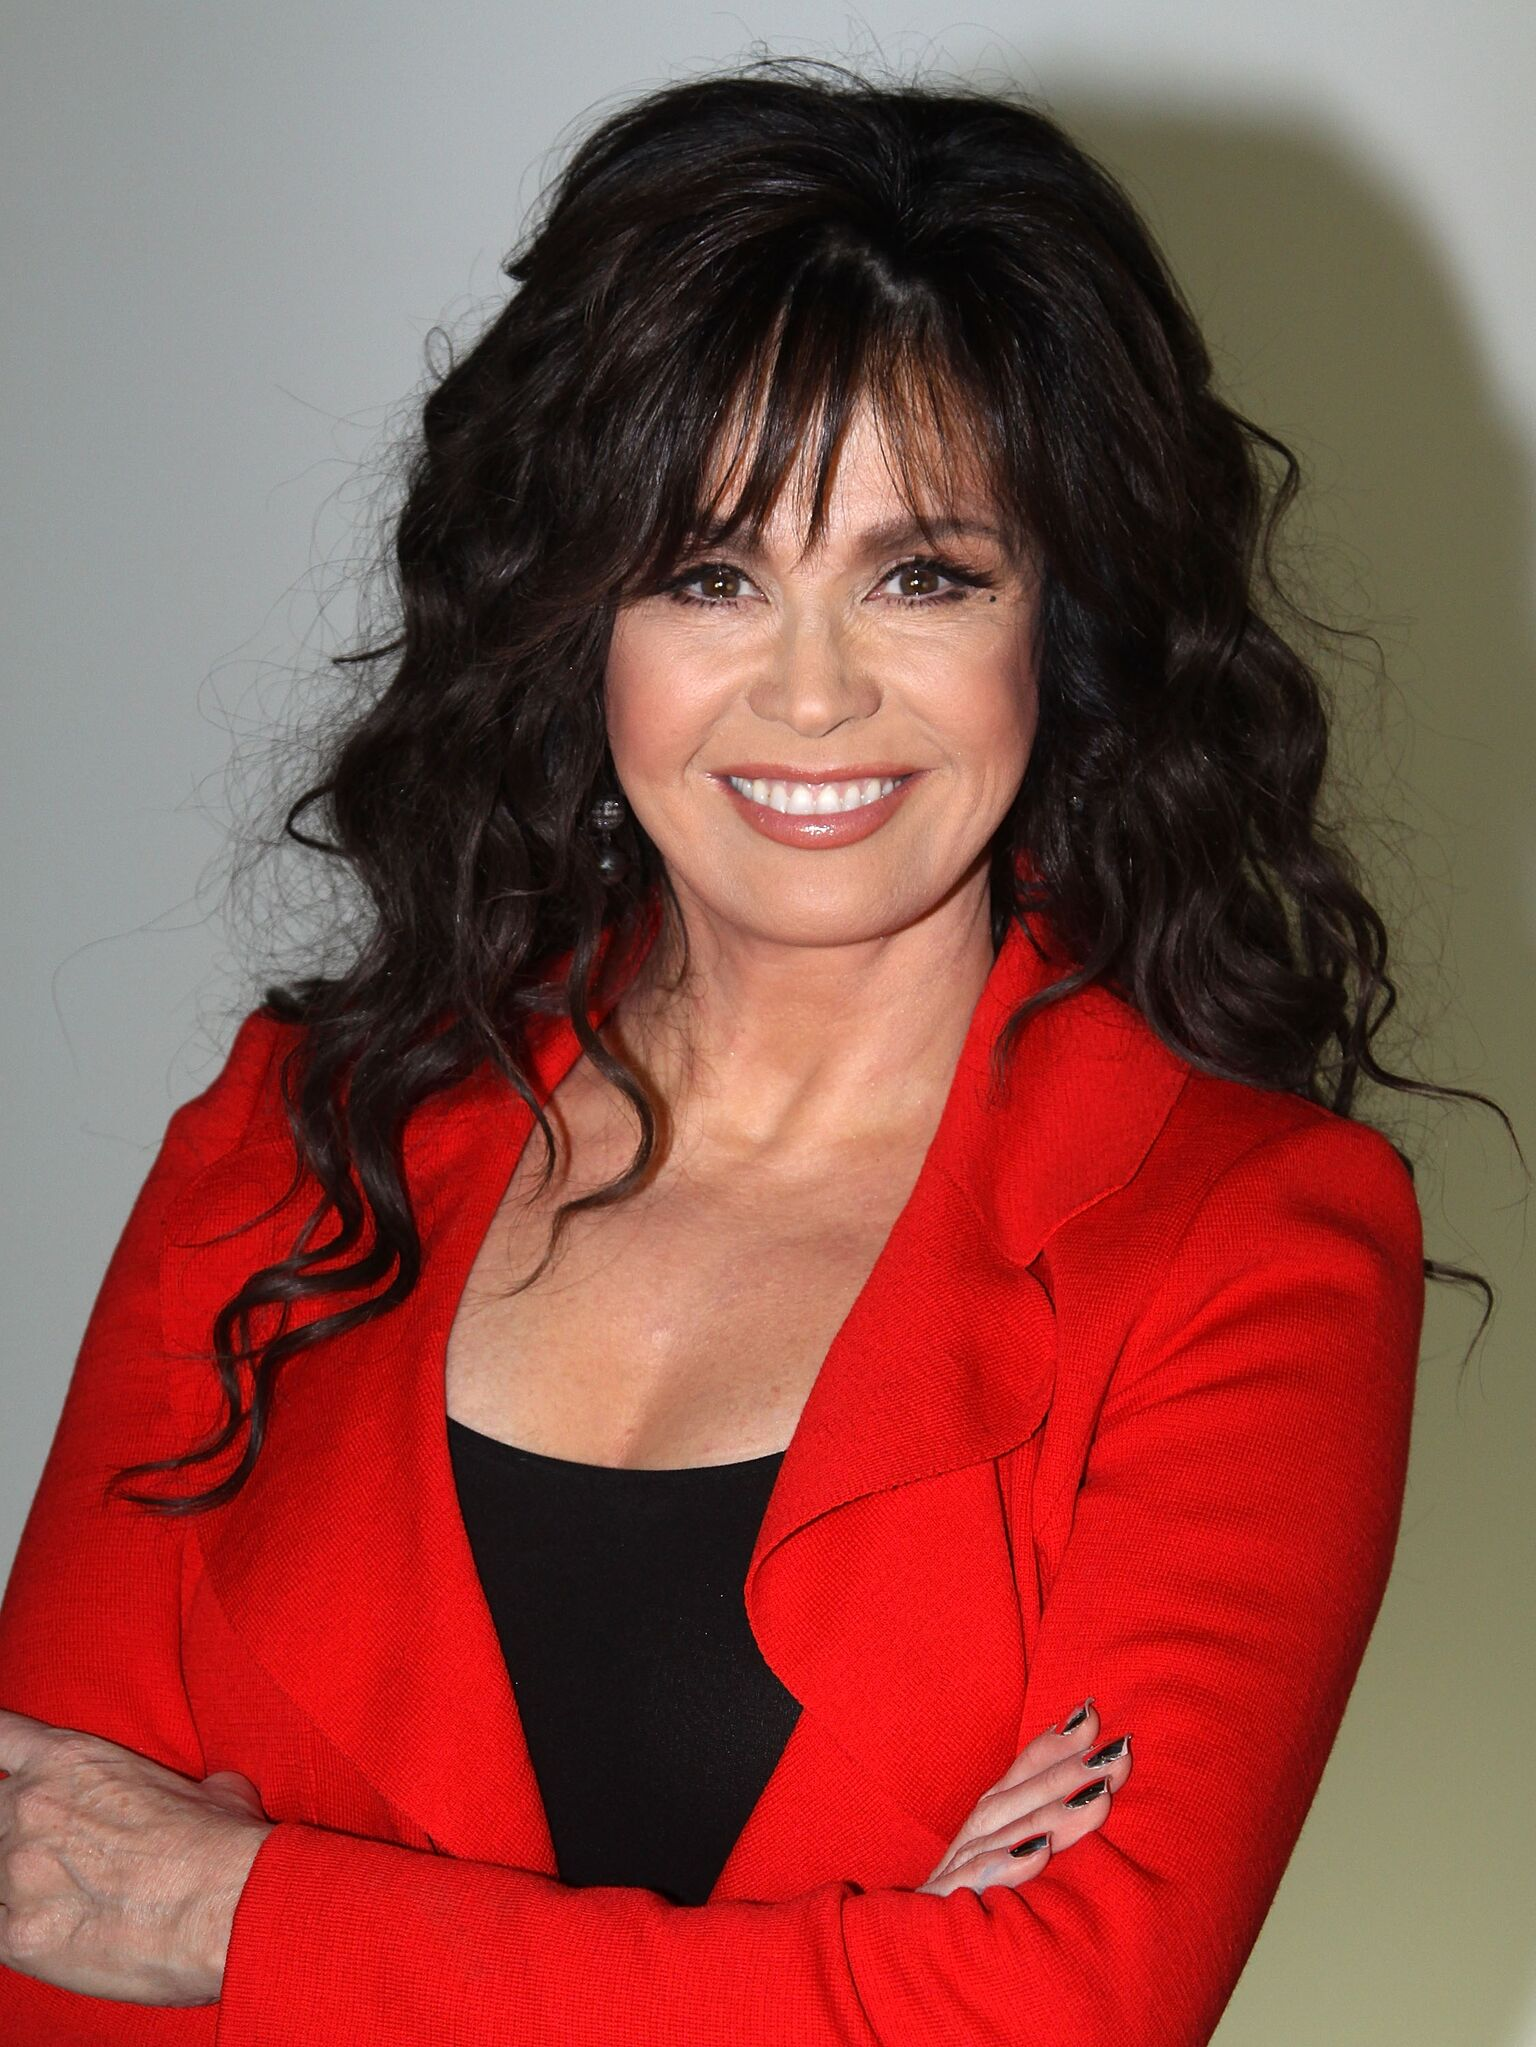 """Marie Osmond poses as she promotes """"A Broadway Christmas"""" as she visits Broadway.com at The Broadway.com Studios 